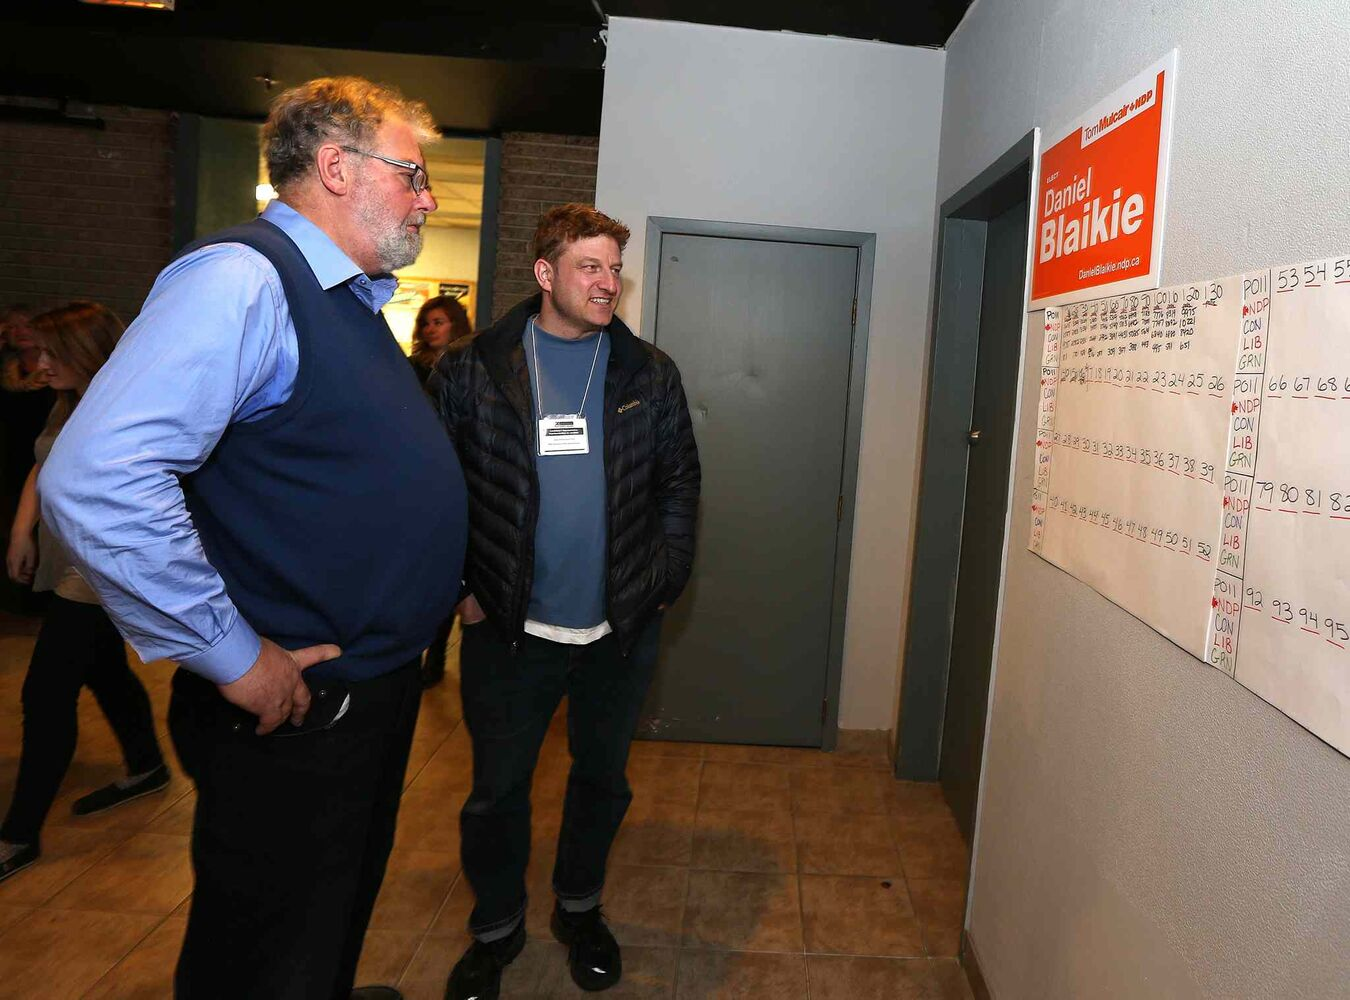 Former MP Bill Blaikie checks out the vote tally for his son, NDP candidate for Elmwood-Transcona, Daniel Blaikie, at the New Cavalier Inn on Regent Avenue West on Mon., Oct. 19, 2015.  (Jason Halstead / Winnipeg Free Press)